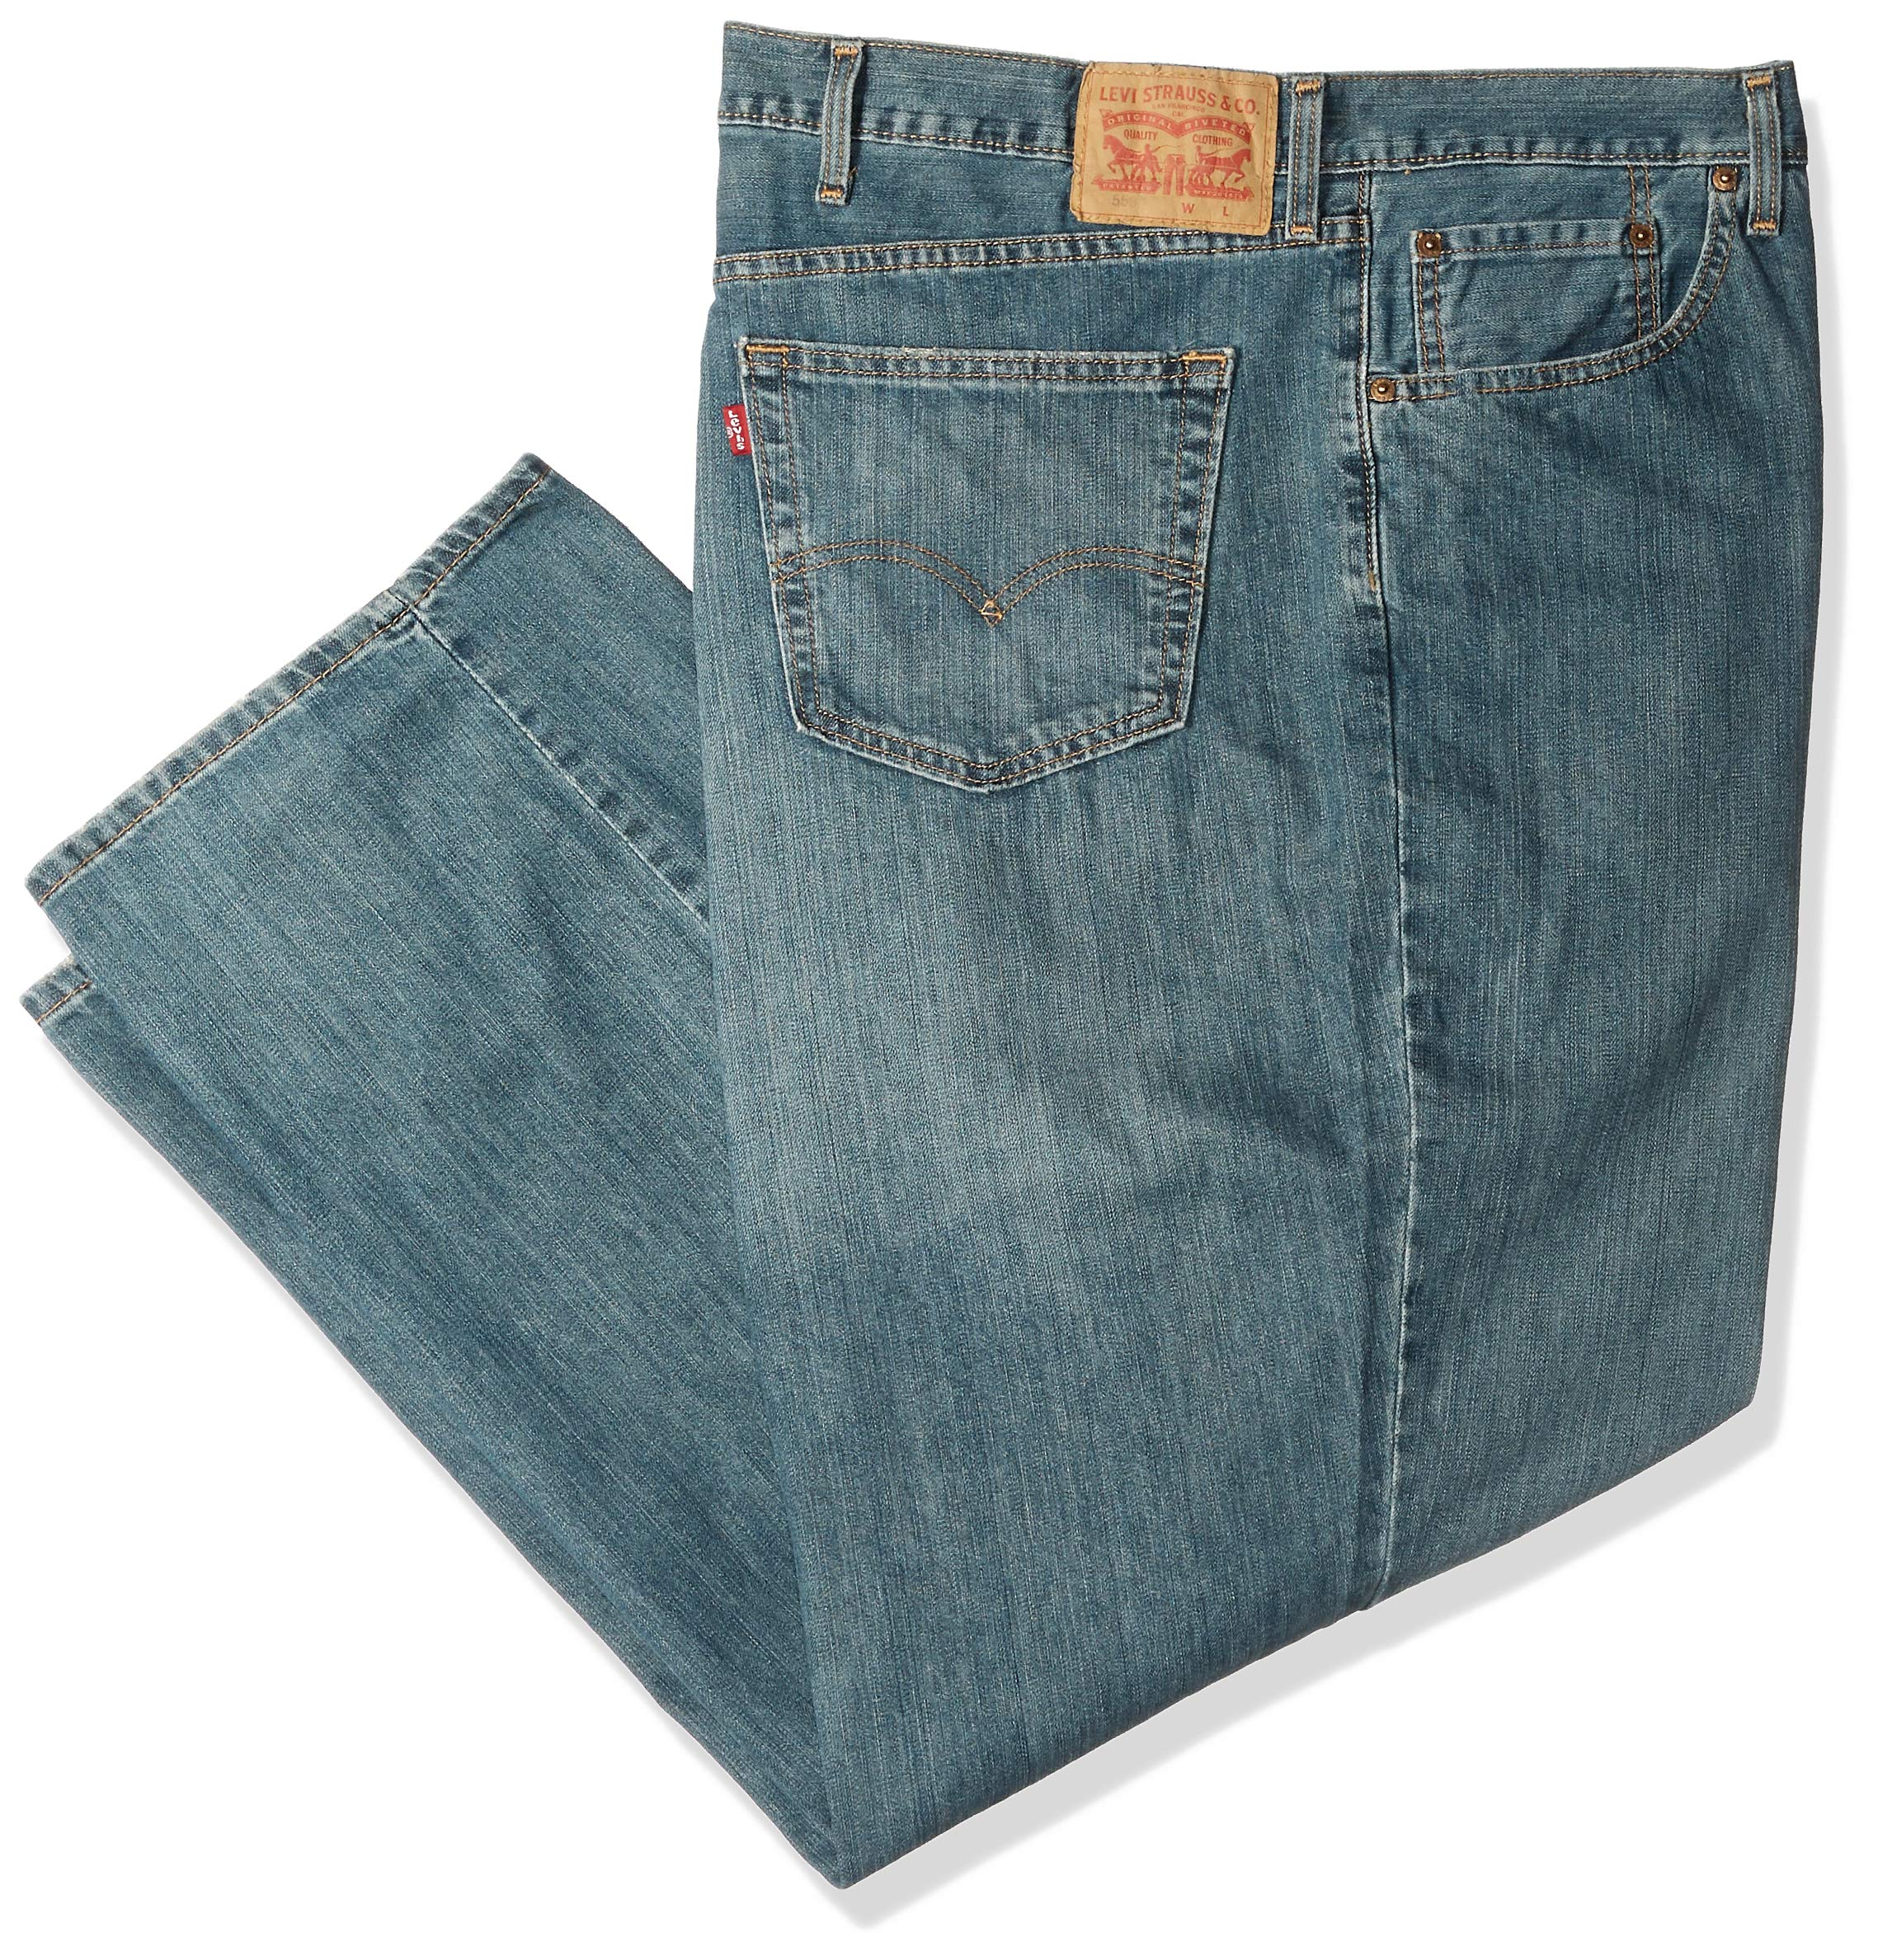 Levi's Men's Big and Tall Big & Tall 559 Relaxed Straight Jeans, Sub Zero, 40W X 36L